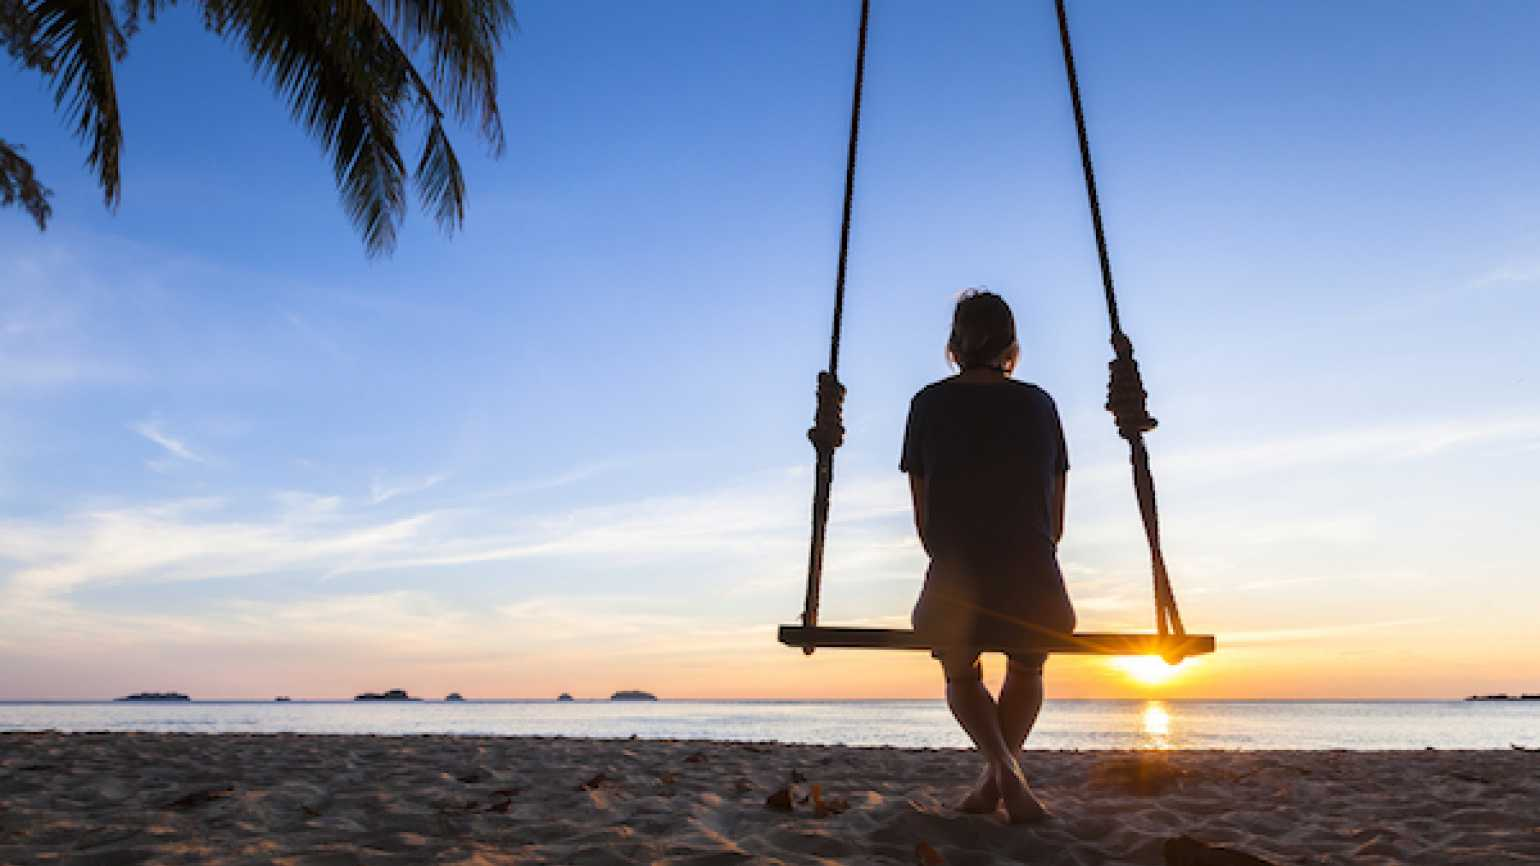 The importance of solitude